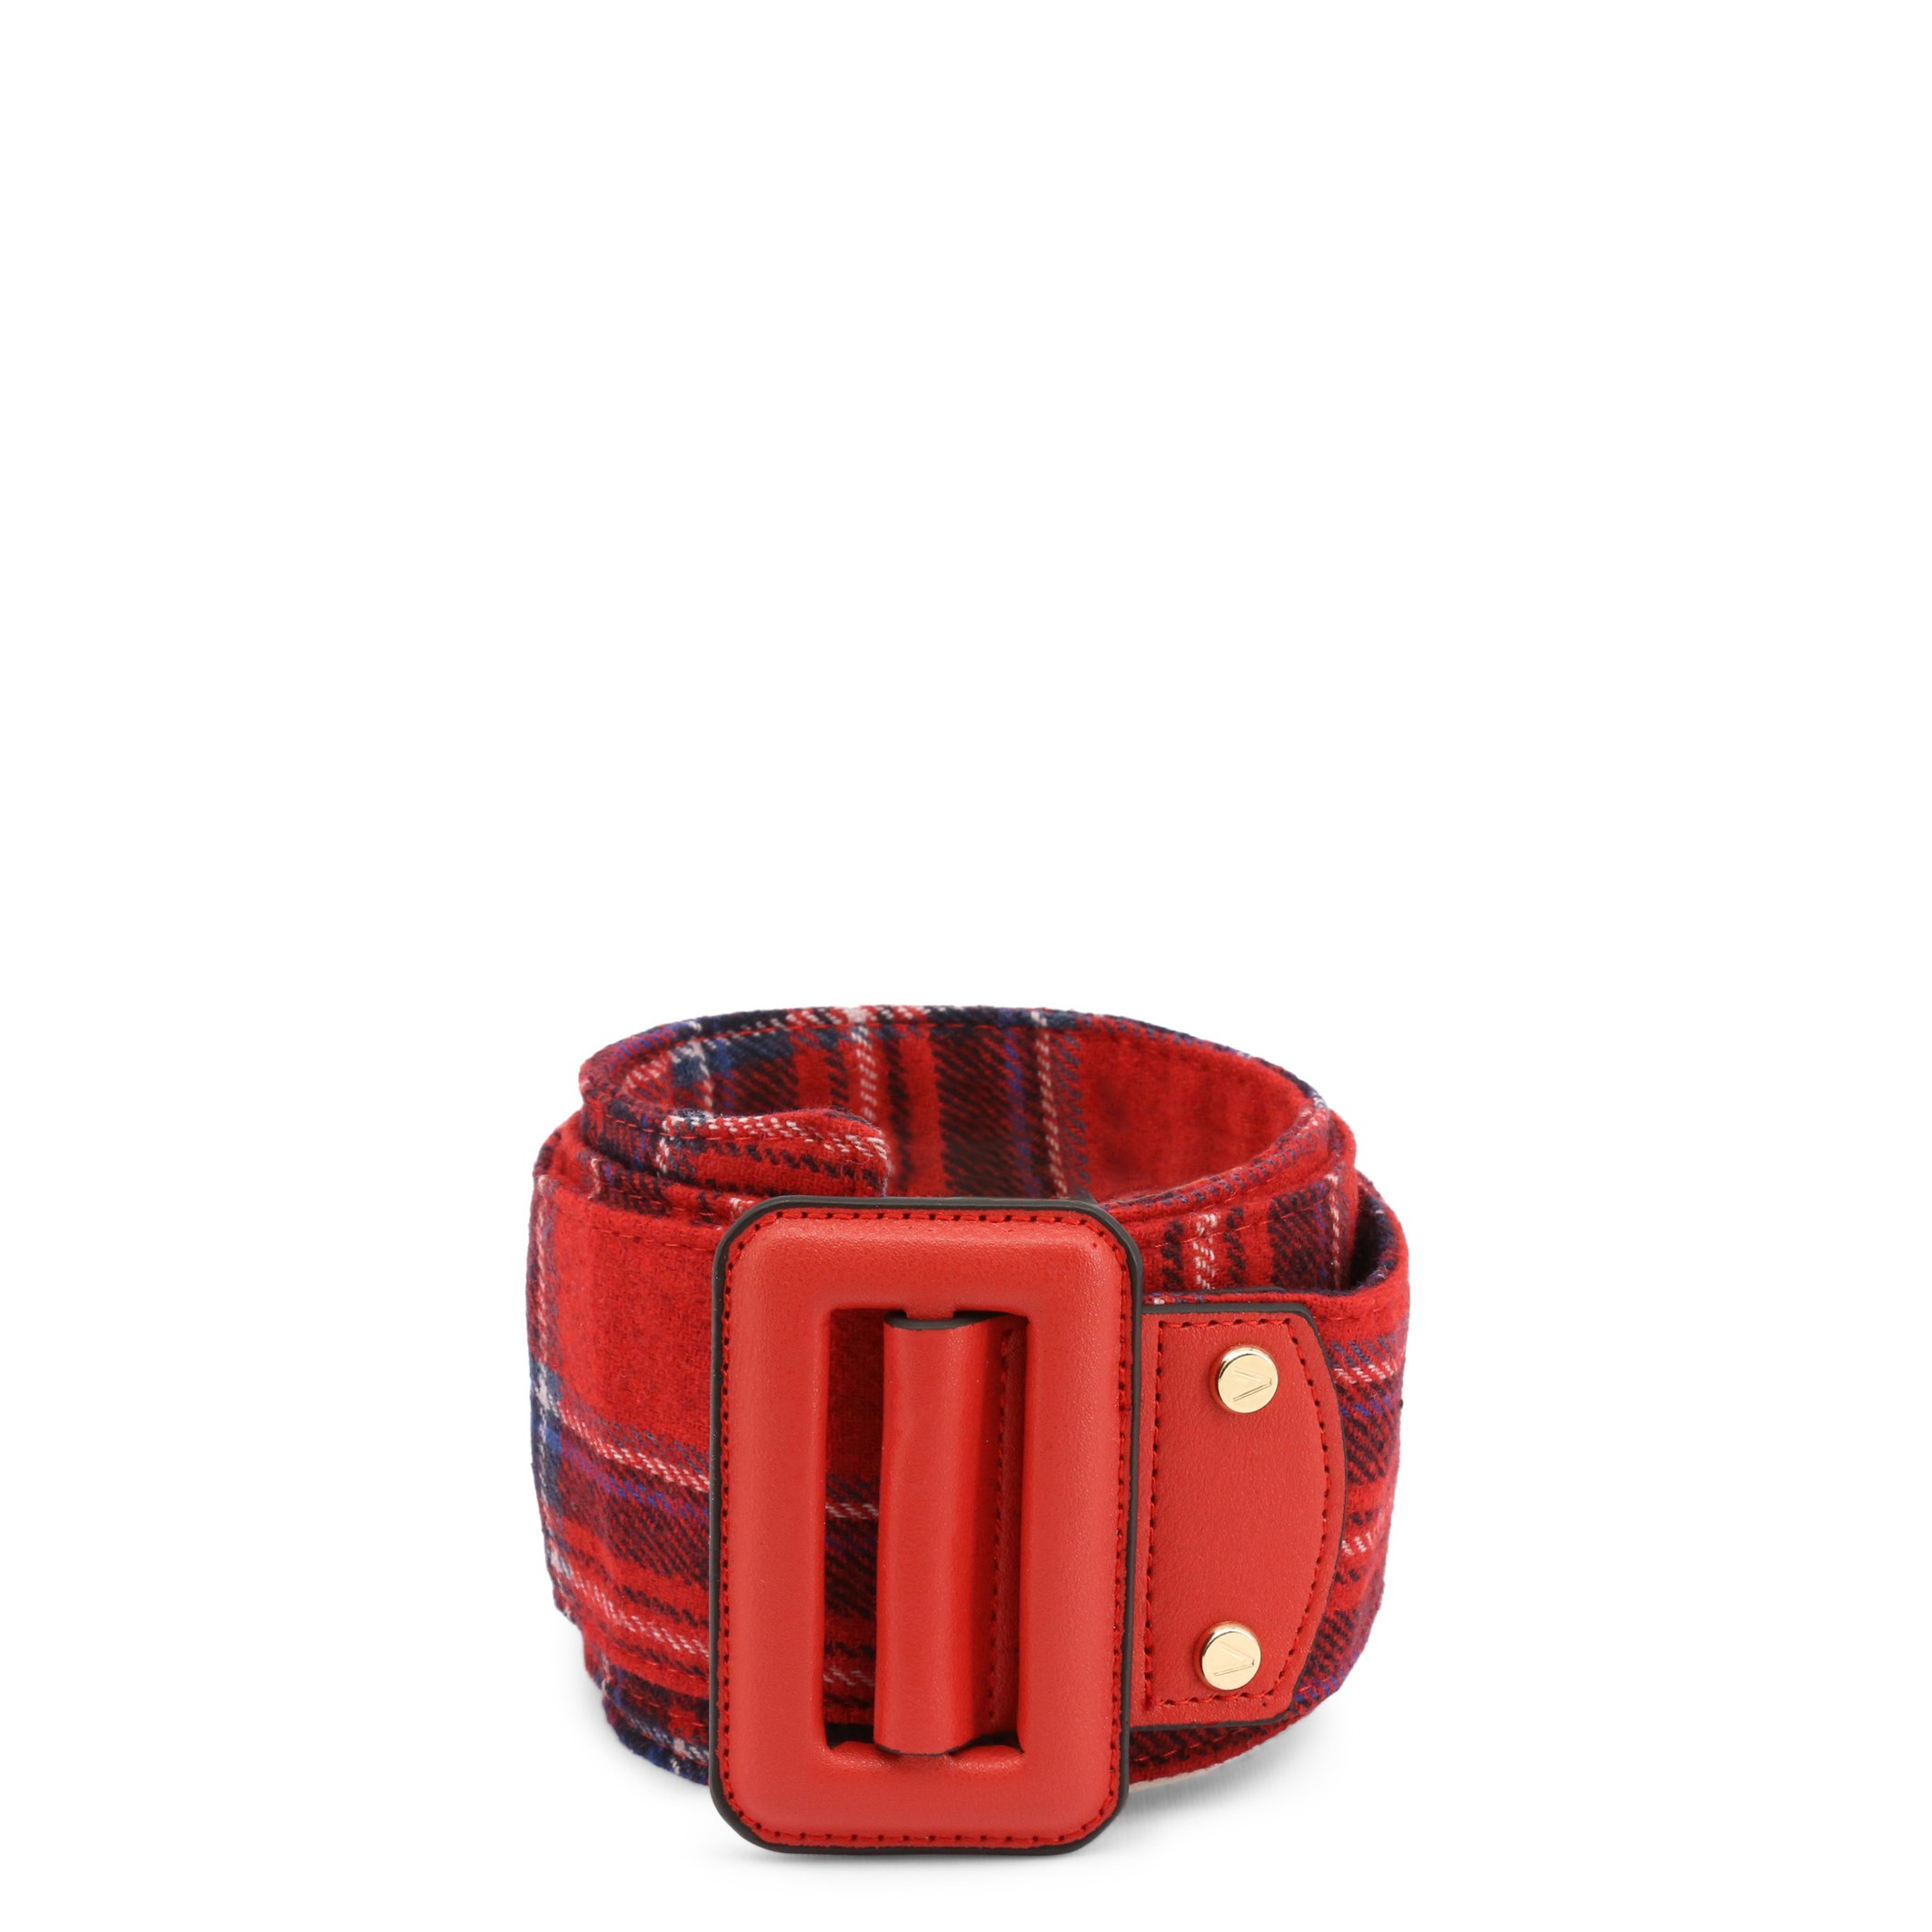 Valentino by Mario Valentino Women's Belt Various Colours ALIEN-VCS2DO56T - red NOSIZE